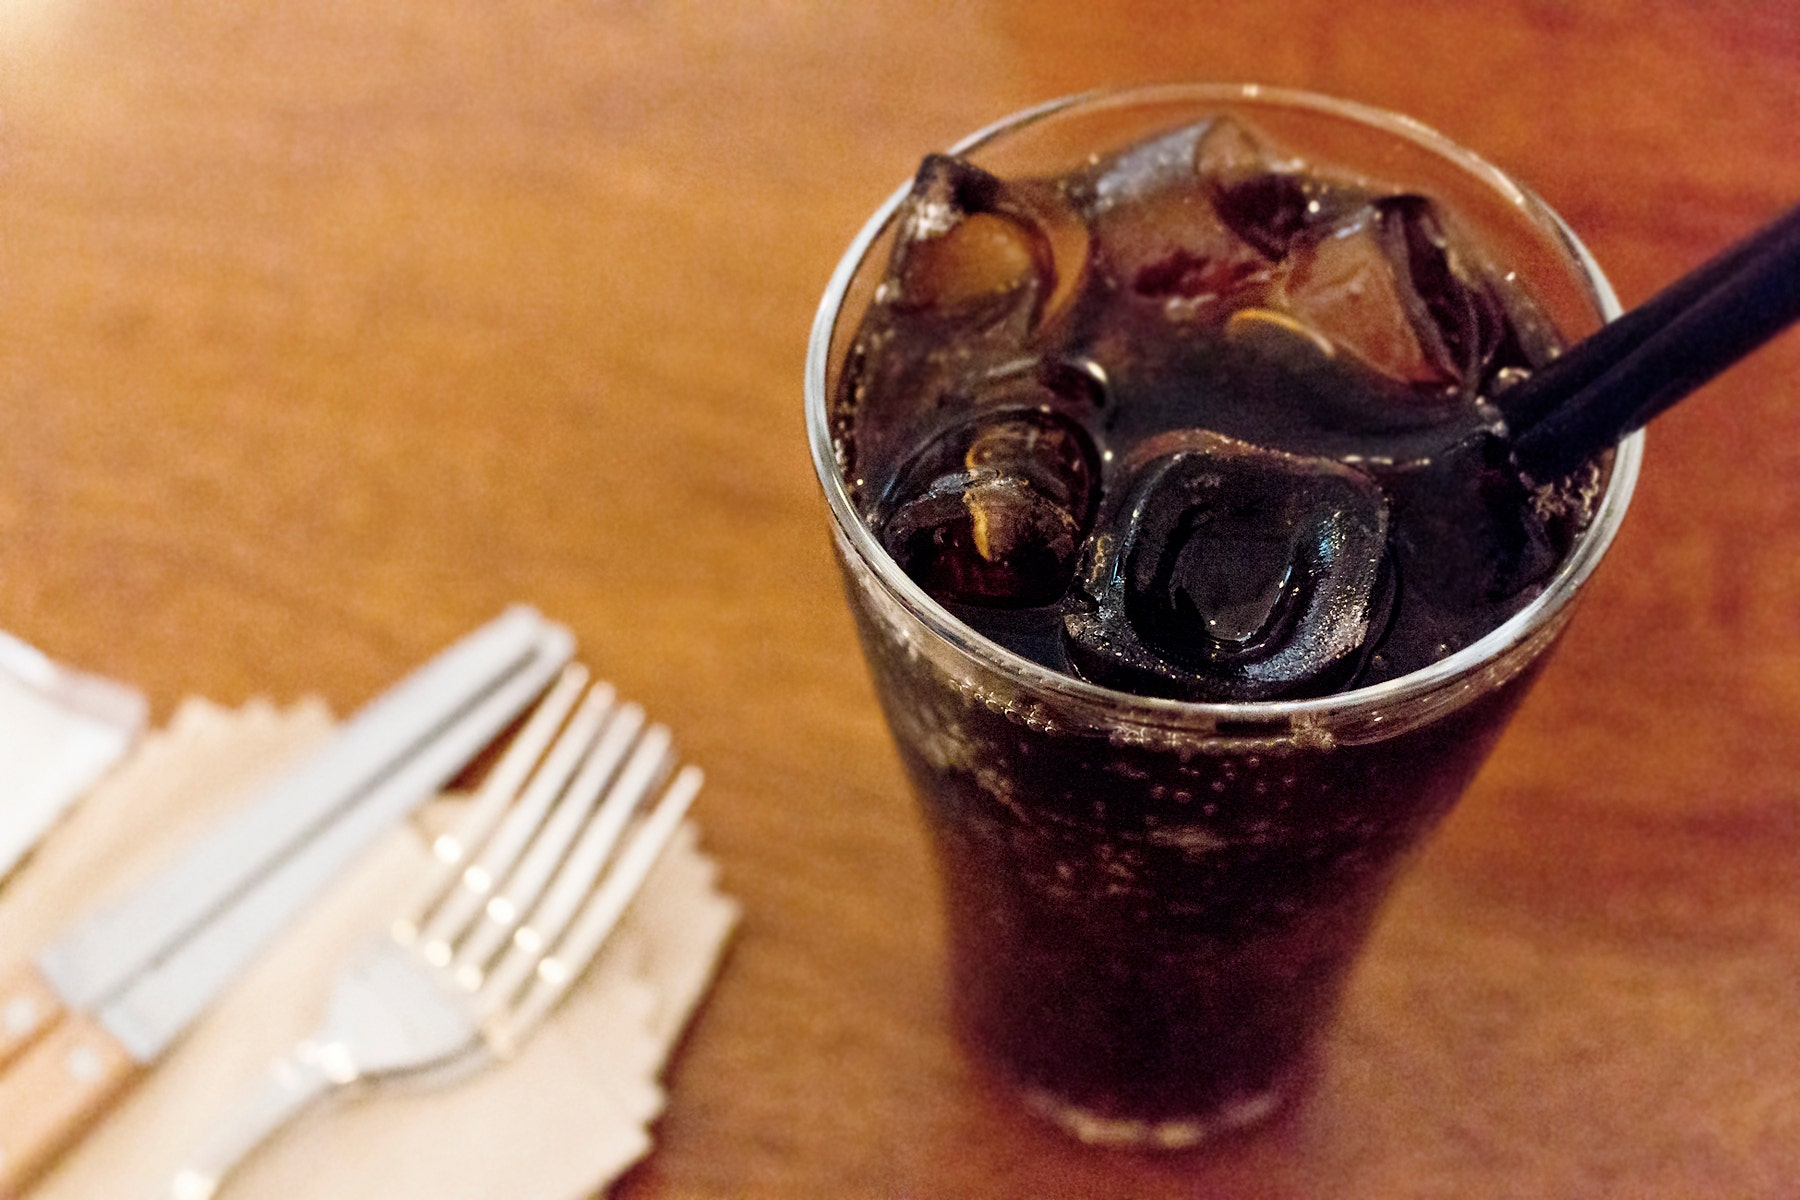 Questions and anxieties about drinking Soda